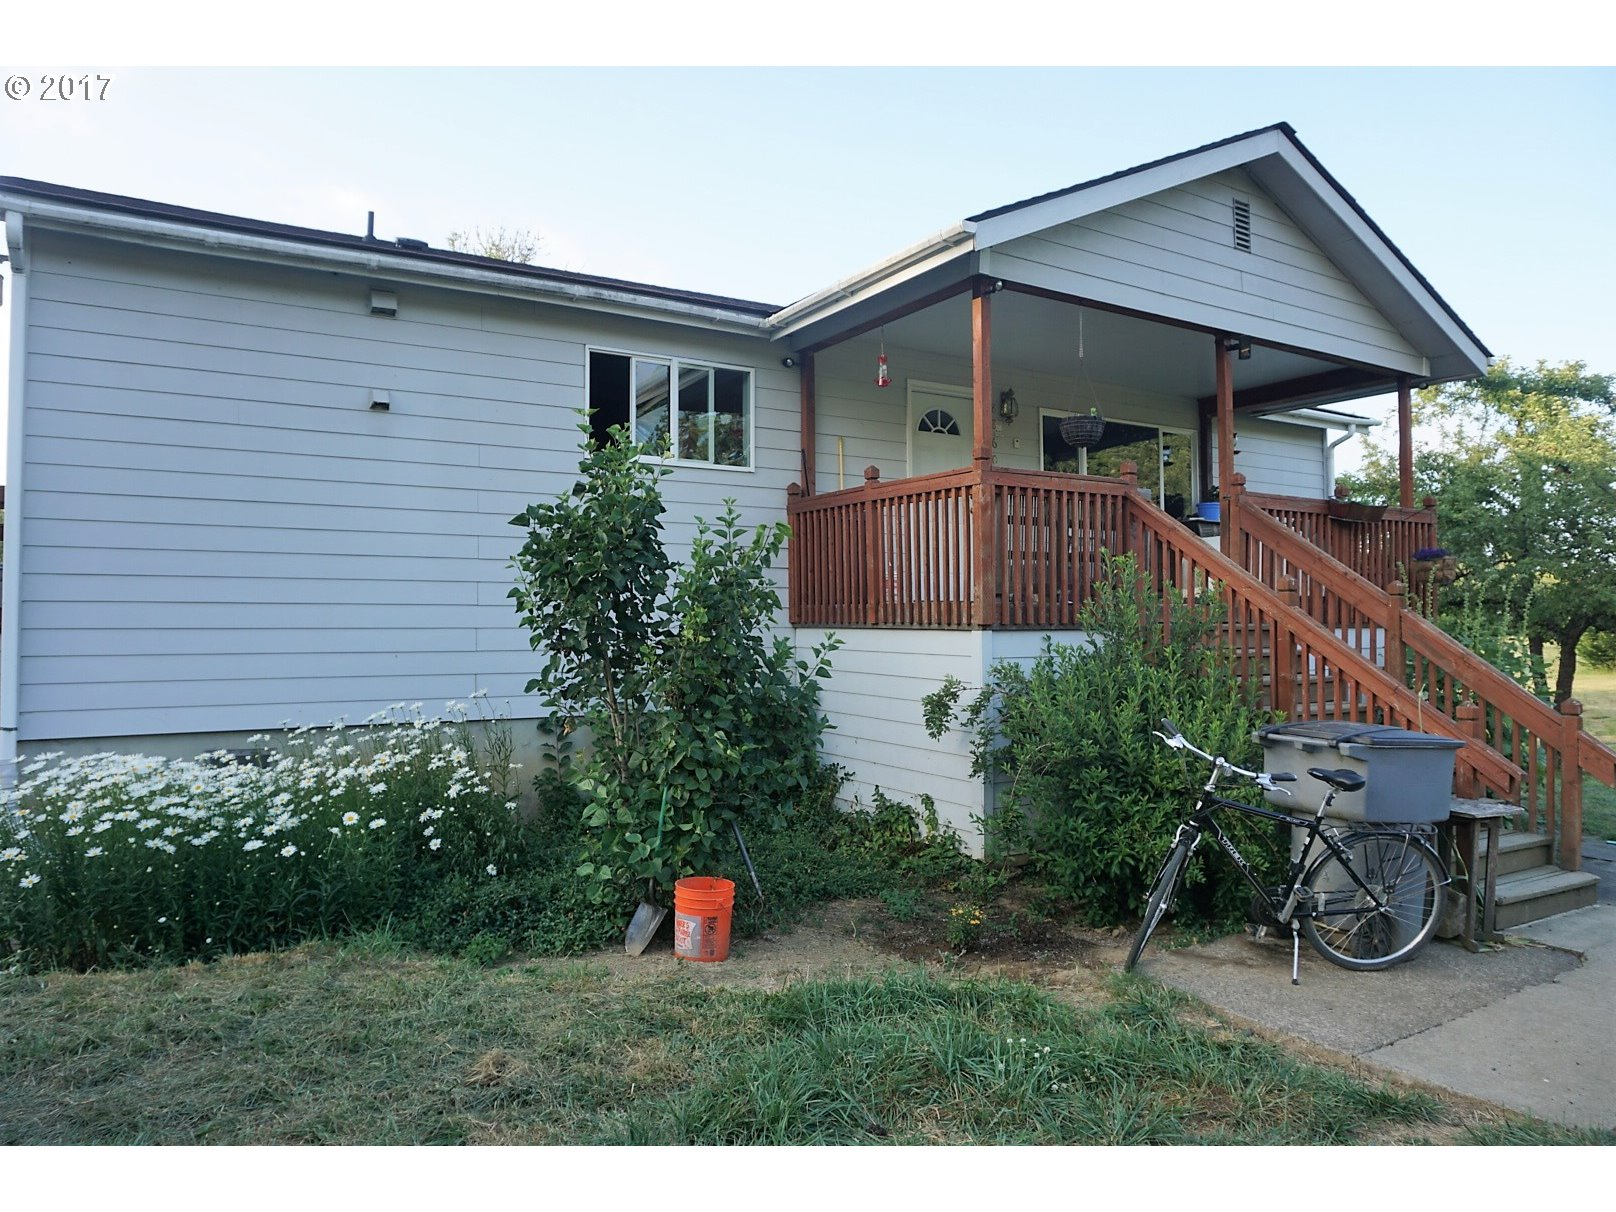 8860 GRAND RONDE RD, Grand Ronde, OR 97347